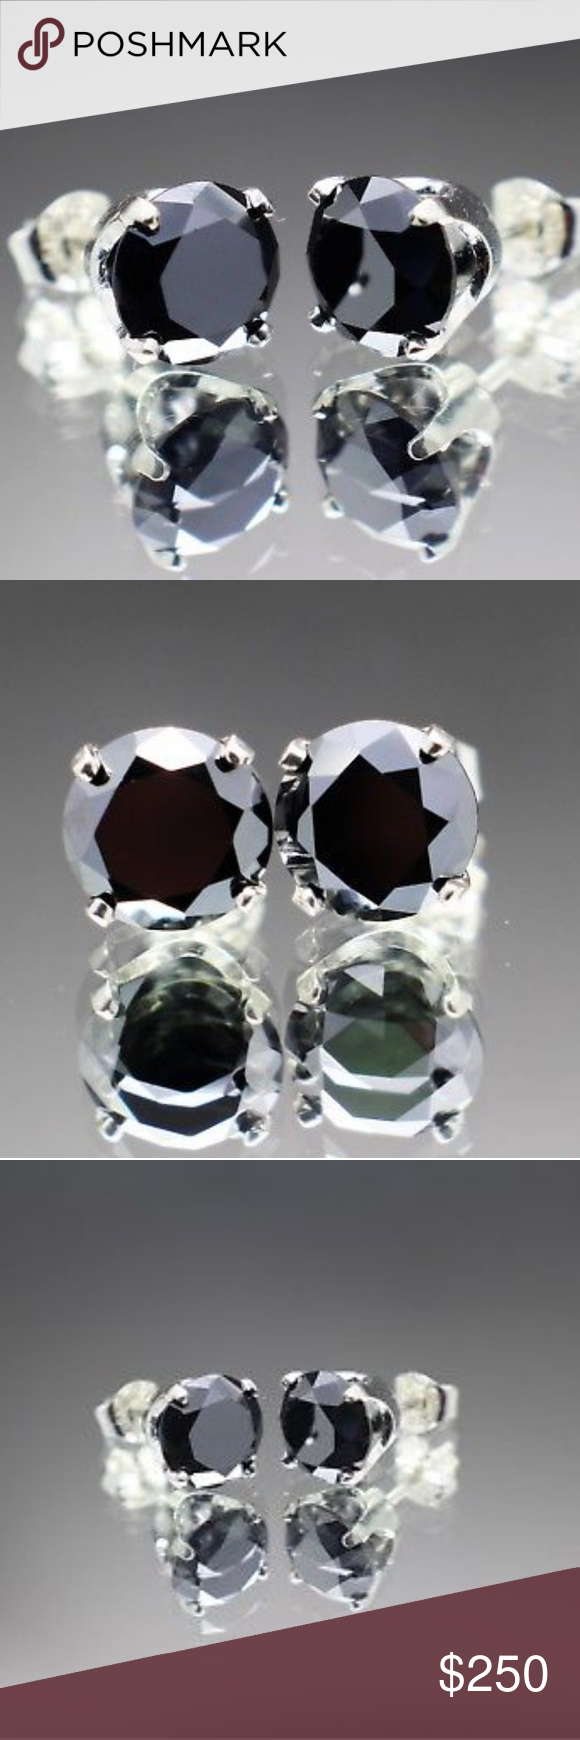 2.40cts Real Black Diamond Stud Earrings Brand new and